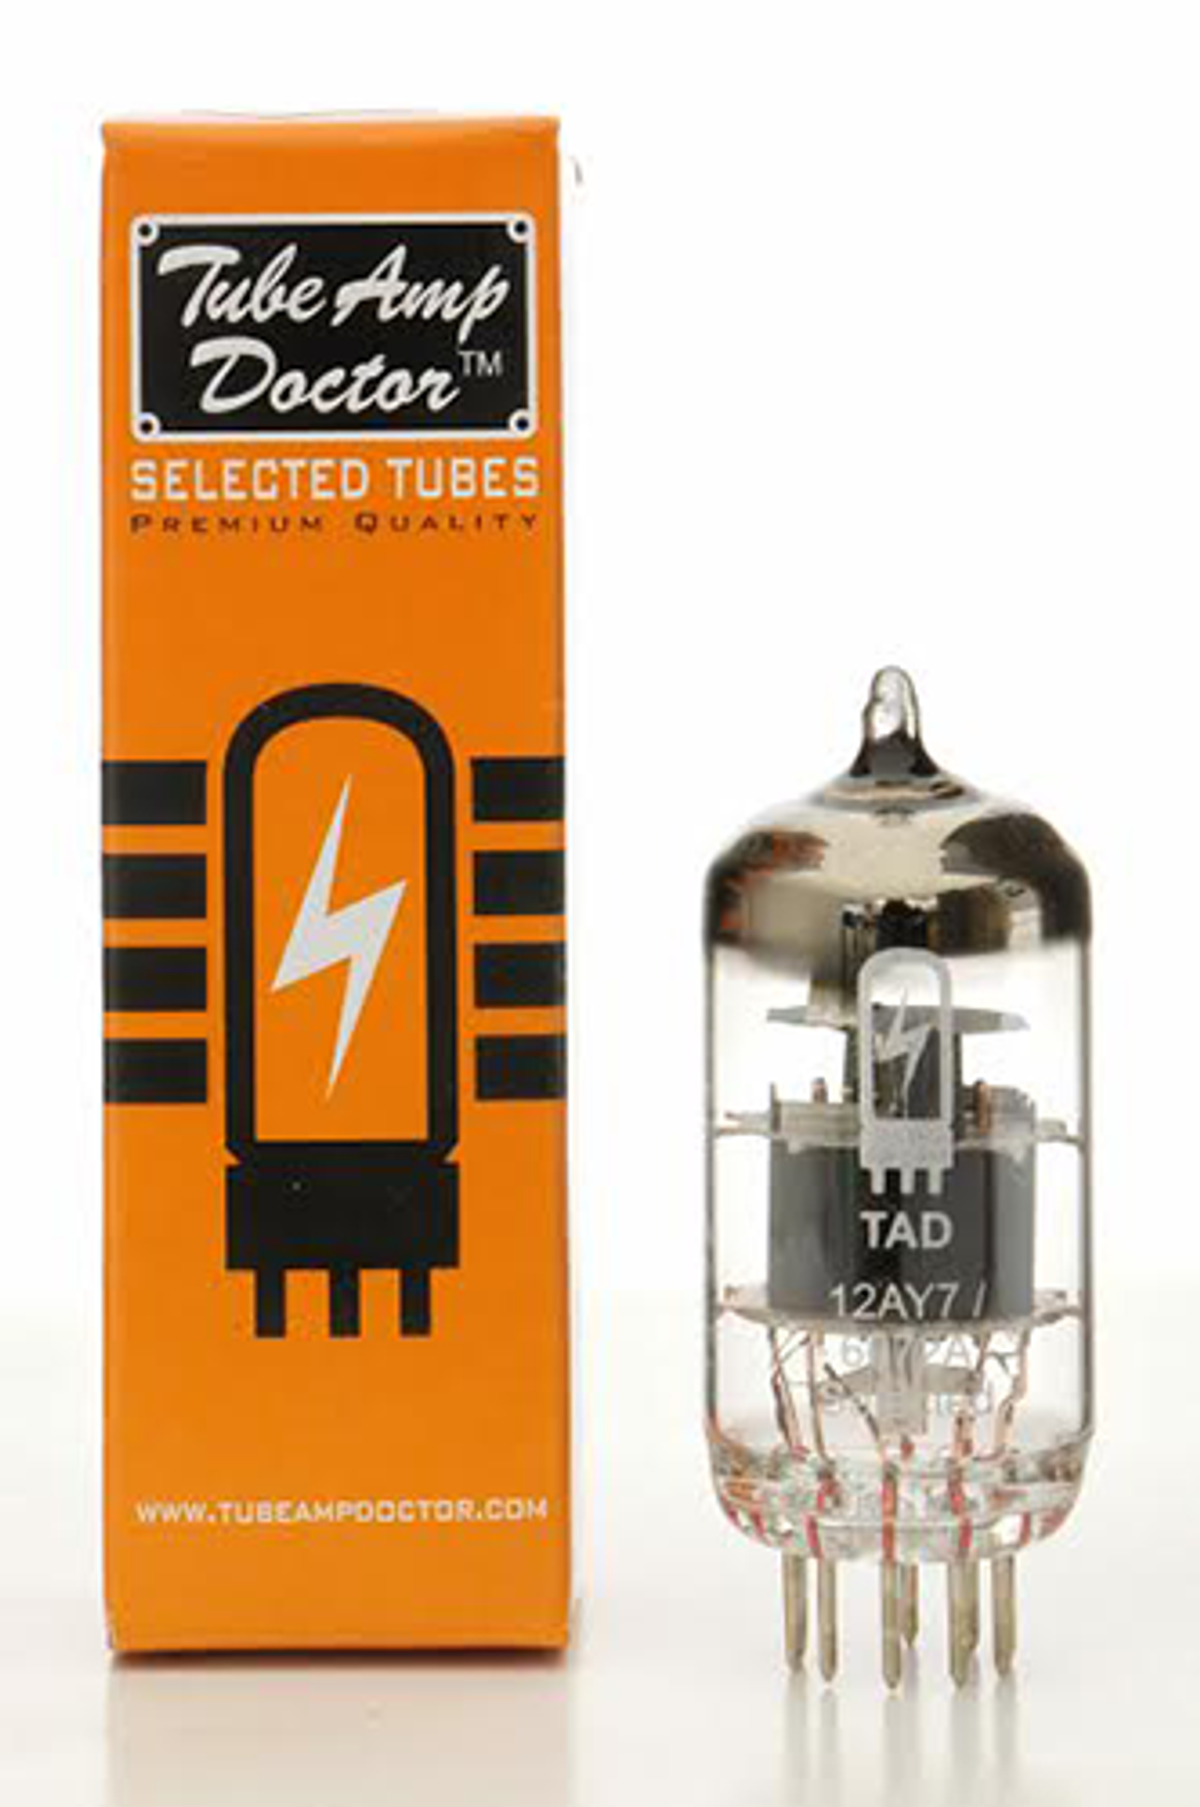 Tube Amp Doctor Unveils a Pair of New Tubes